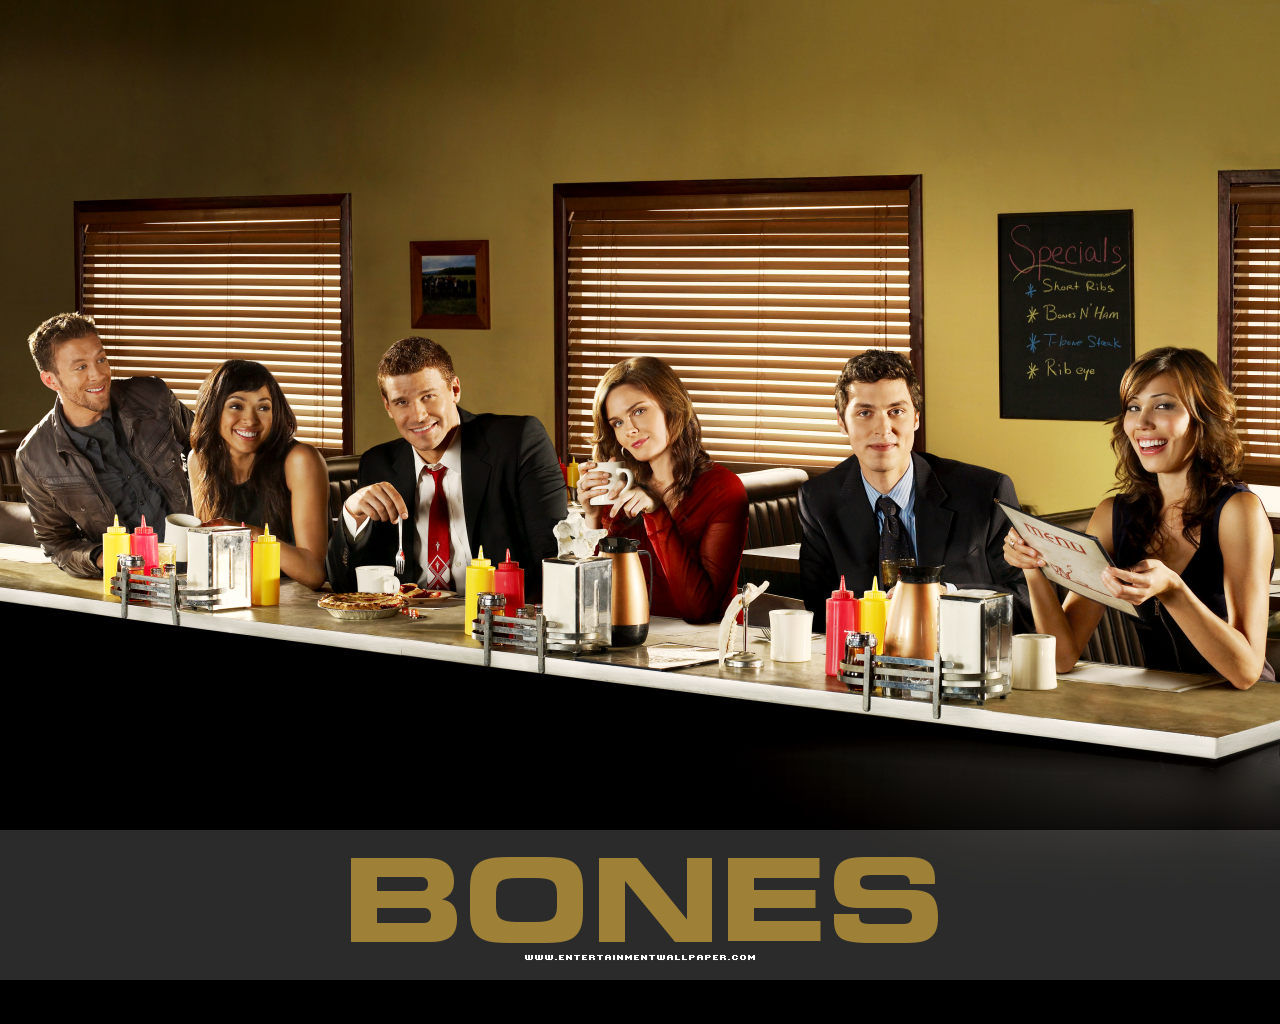 Bones Castle Images HD Wallpaper And Background Photos